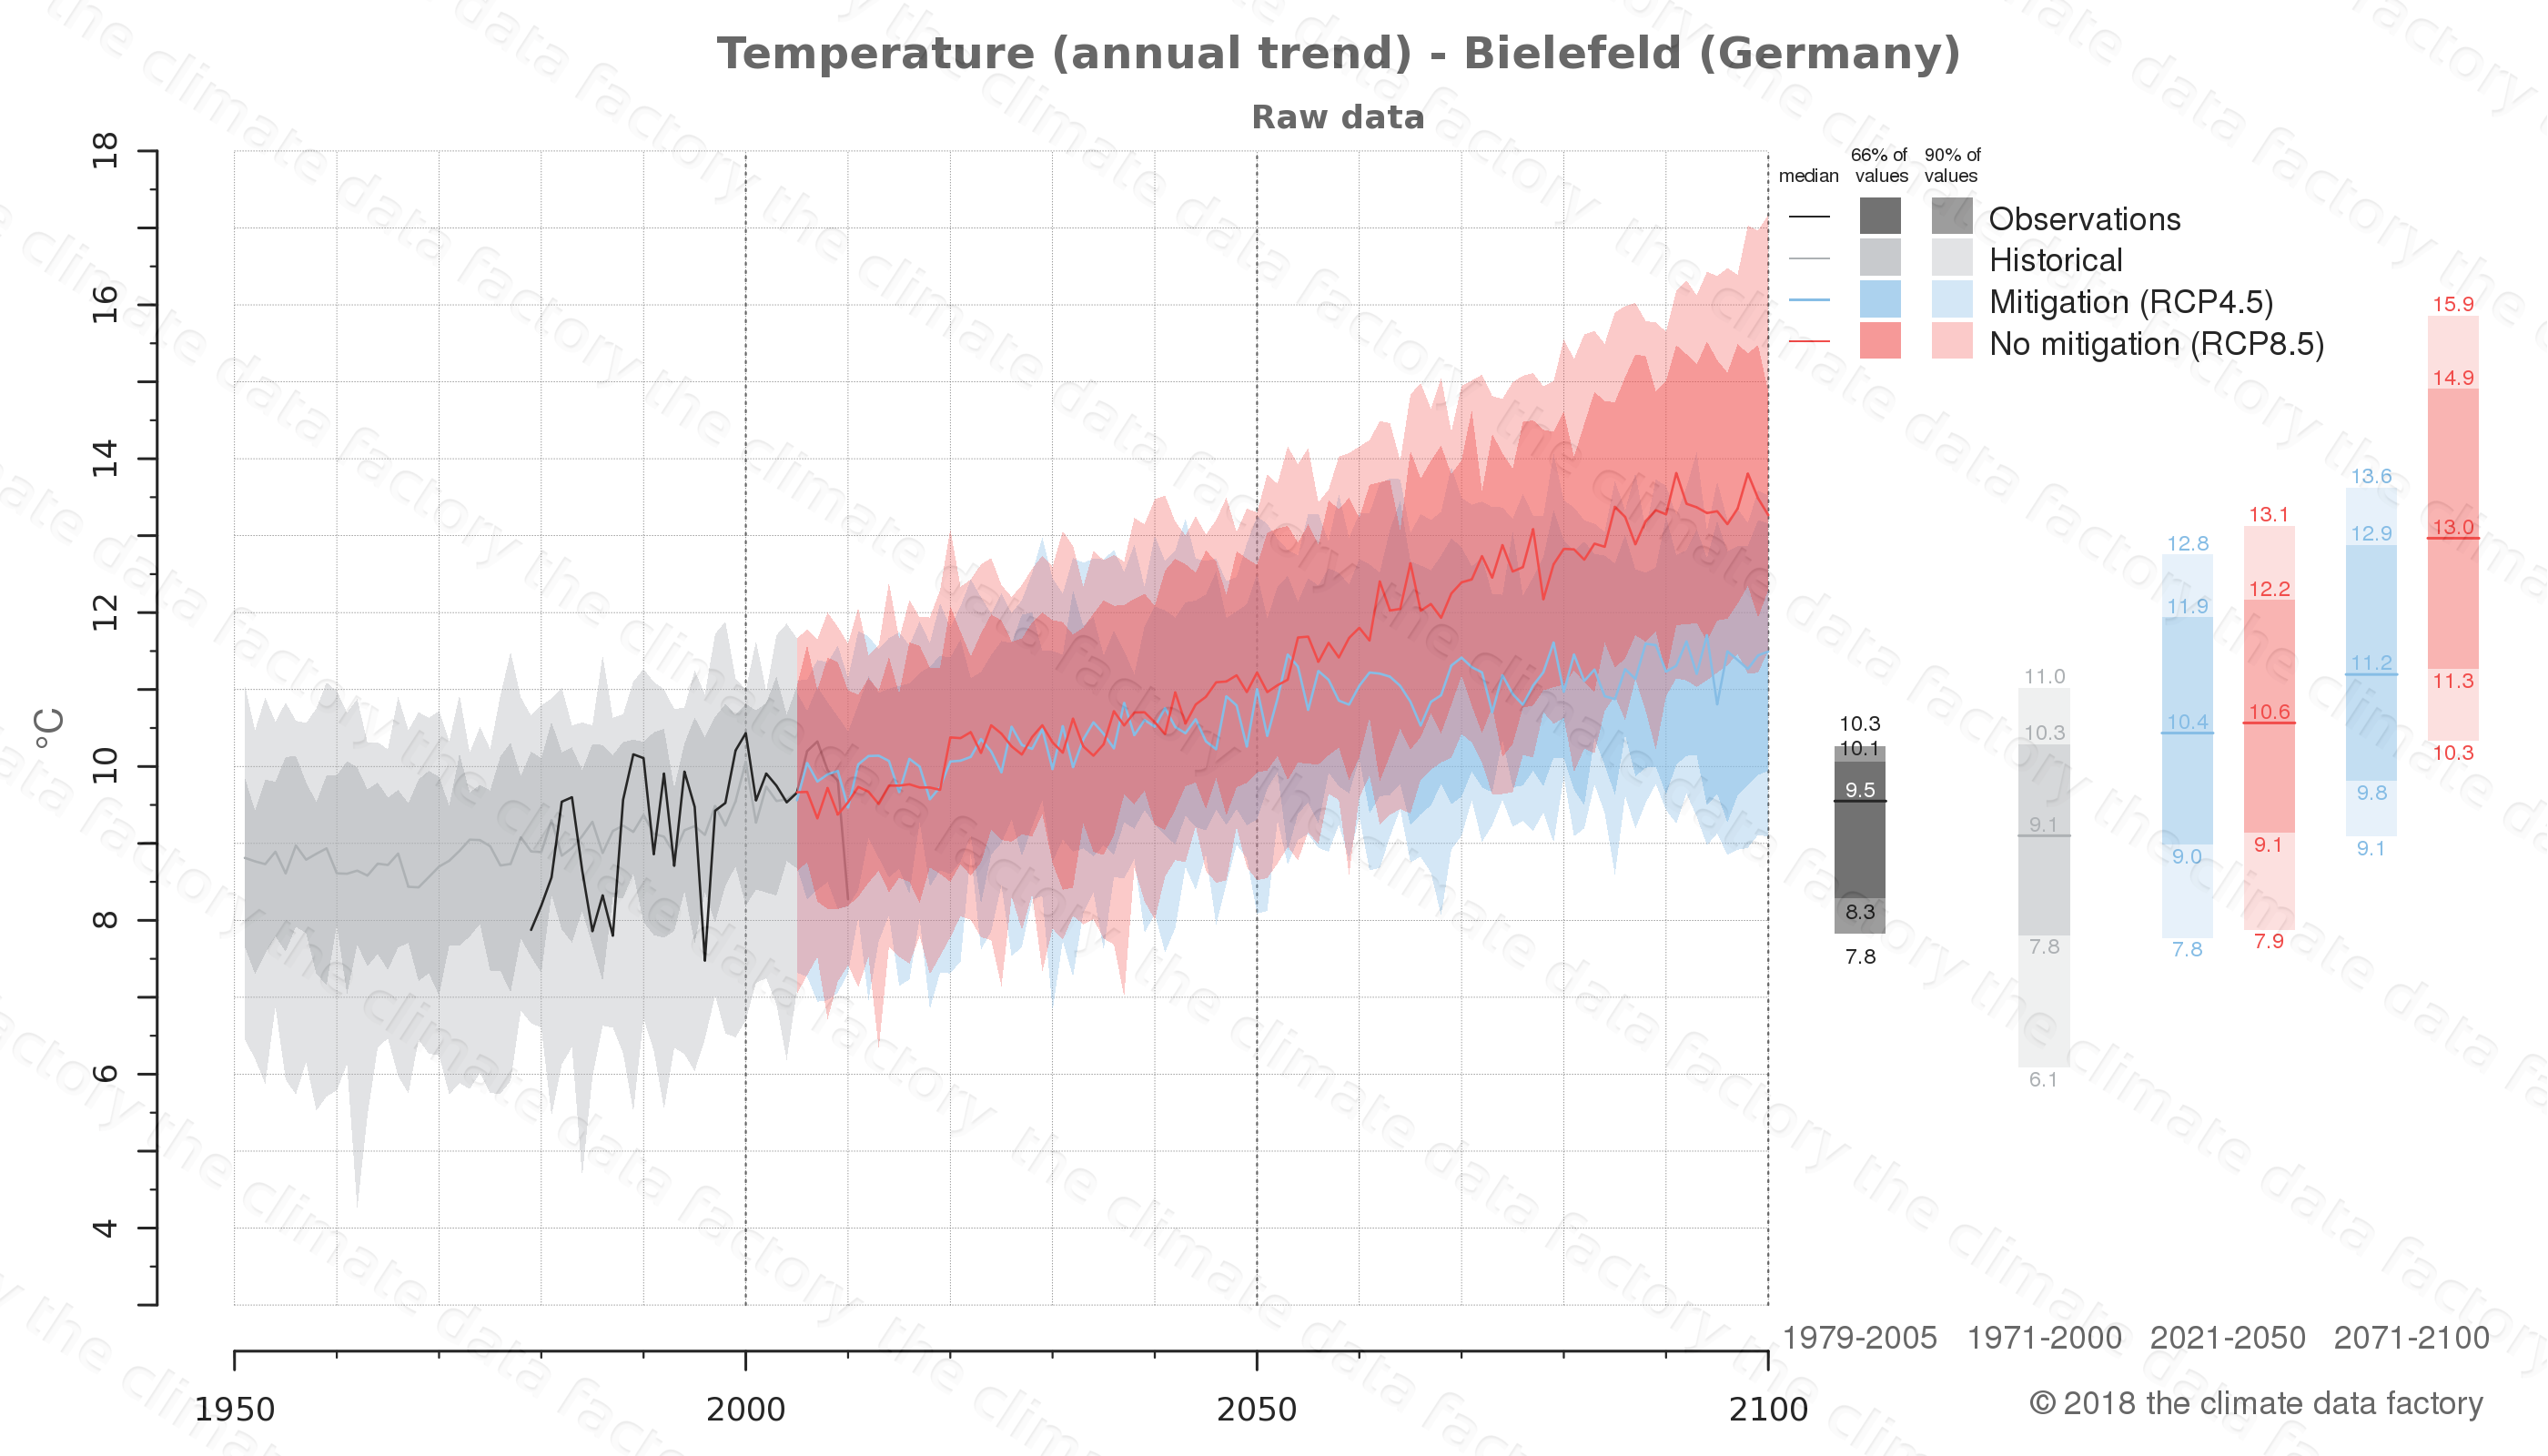 climate change data policy adaptation climate graph city data temperature bielefeld germany